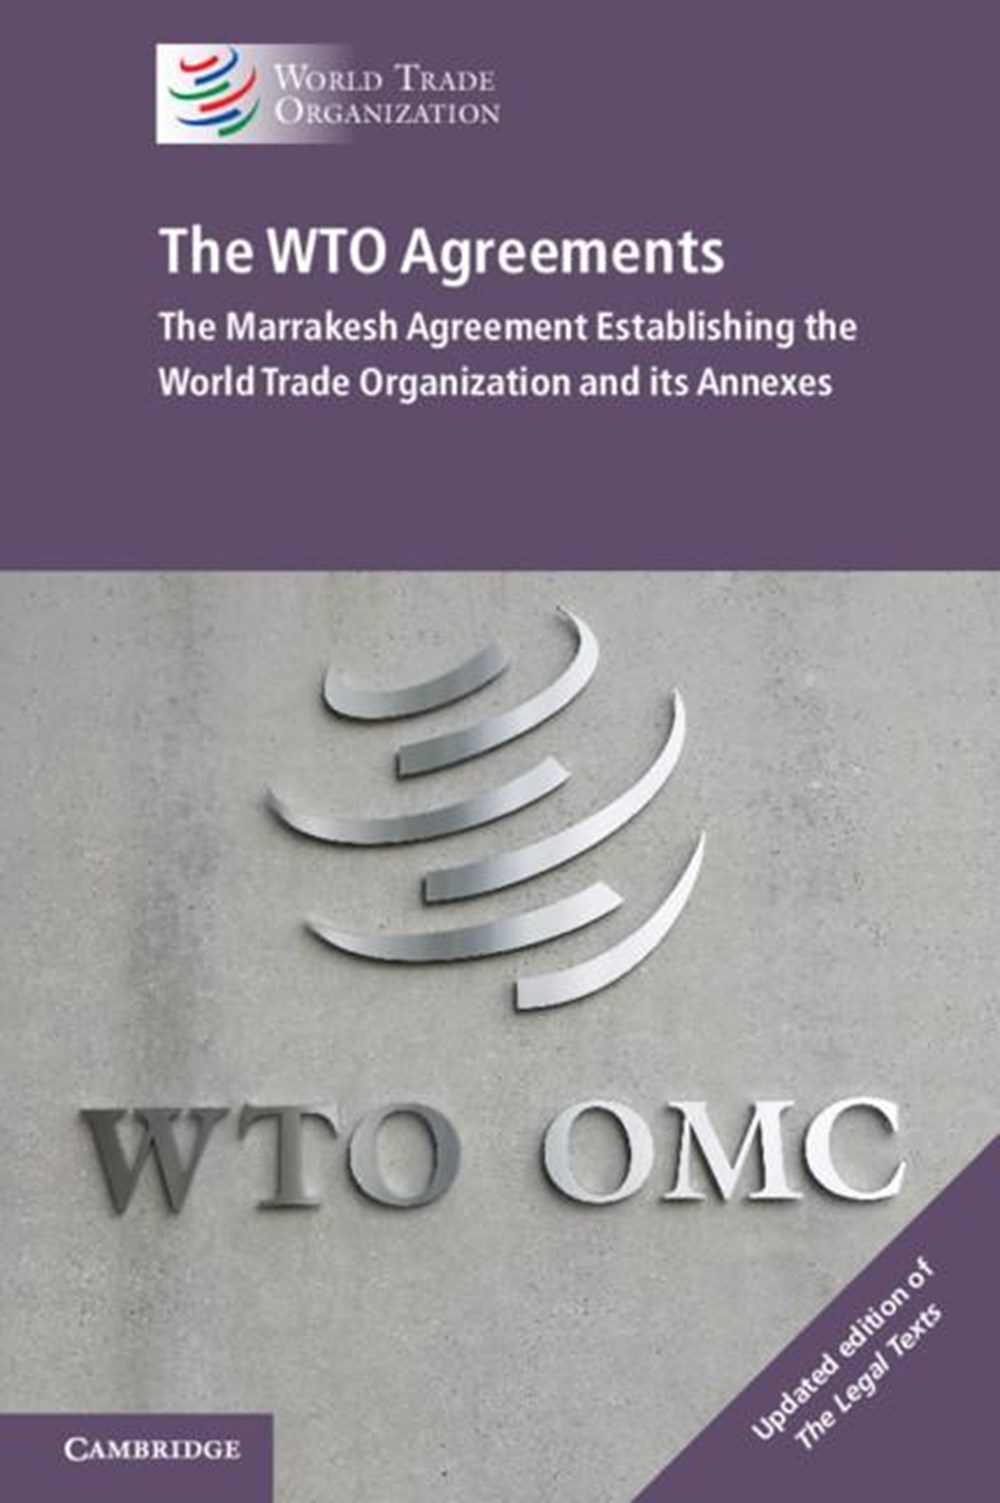 Wto Agreements The Marrakesh Agreement Establishing the World Trade Organization and Its Annexes